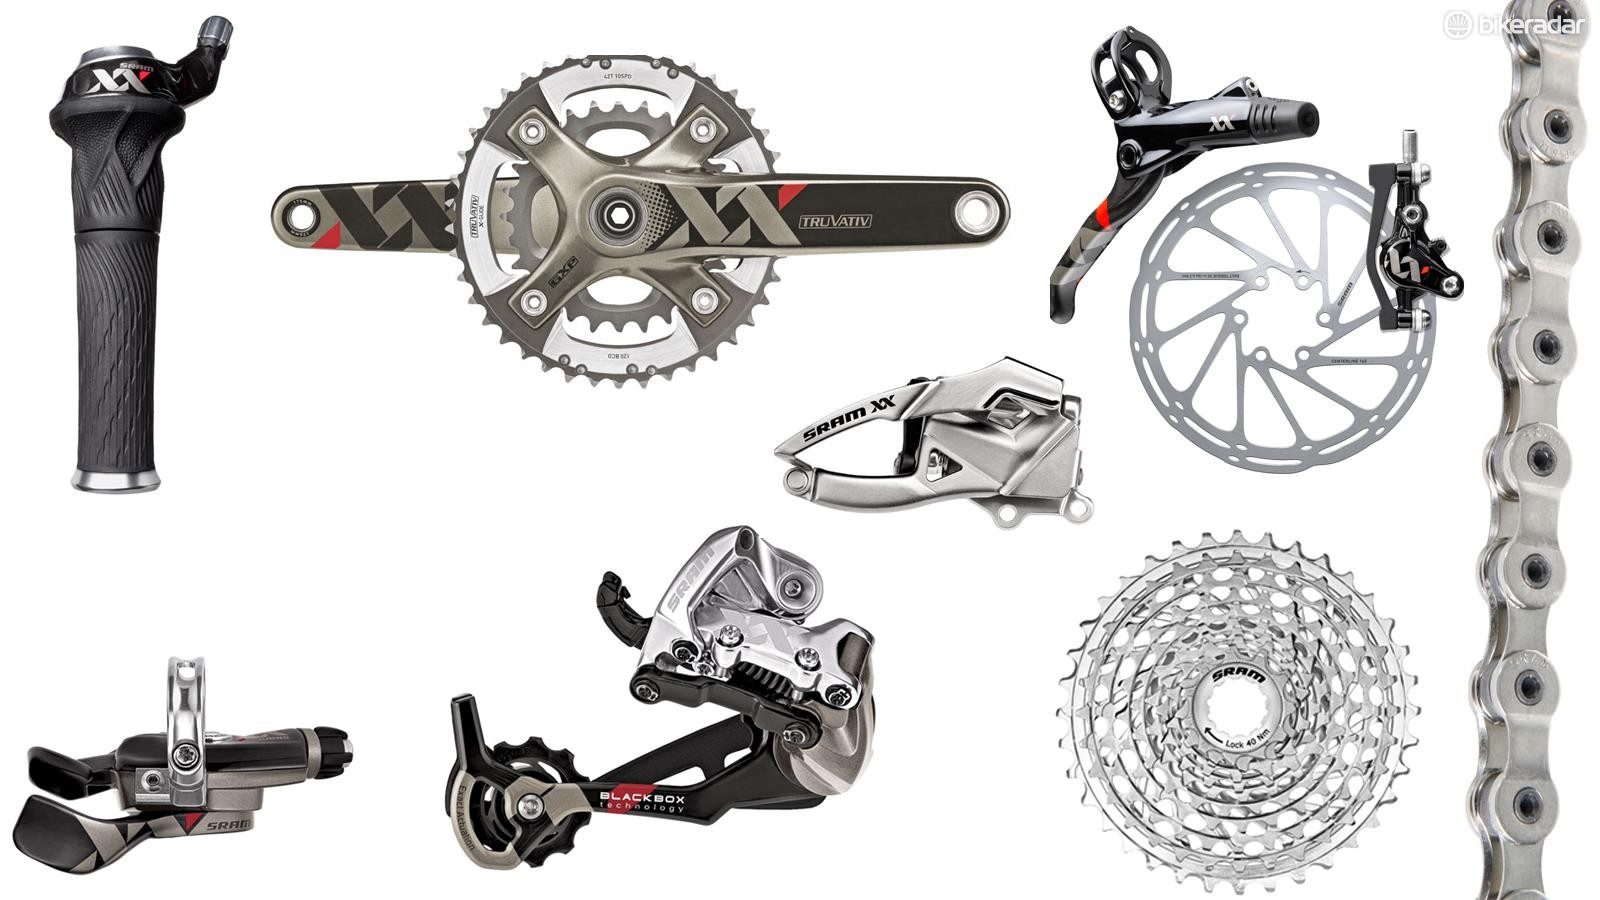 SRAM XX is a 2x10 cross-country-race-focused groupset. While still available, it has been surpassed by SRAM's 1x11 and 1x12 mountain groups